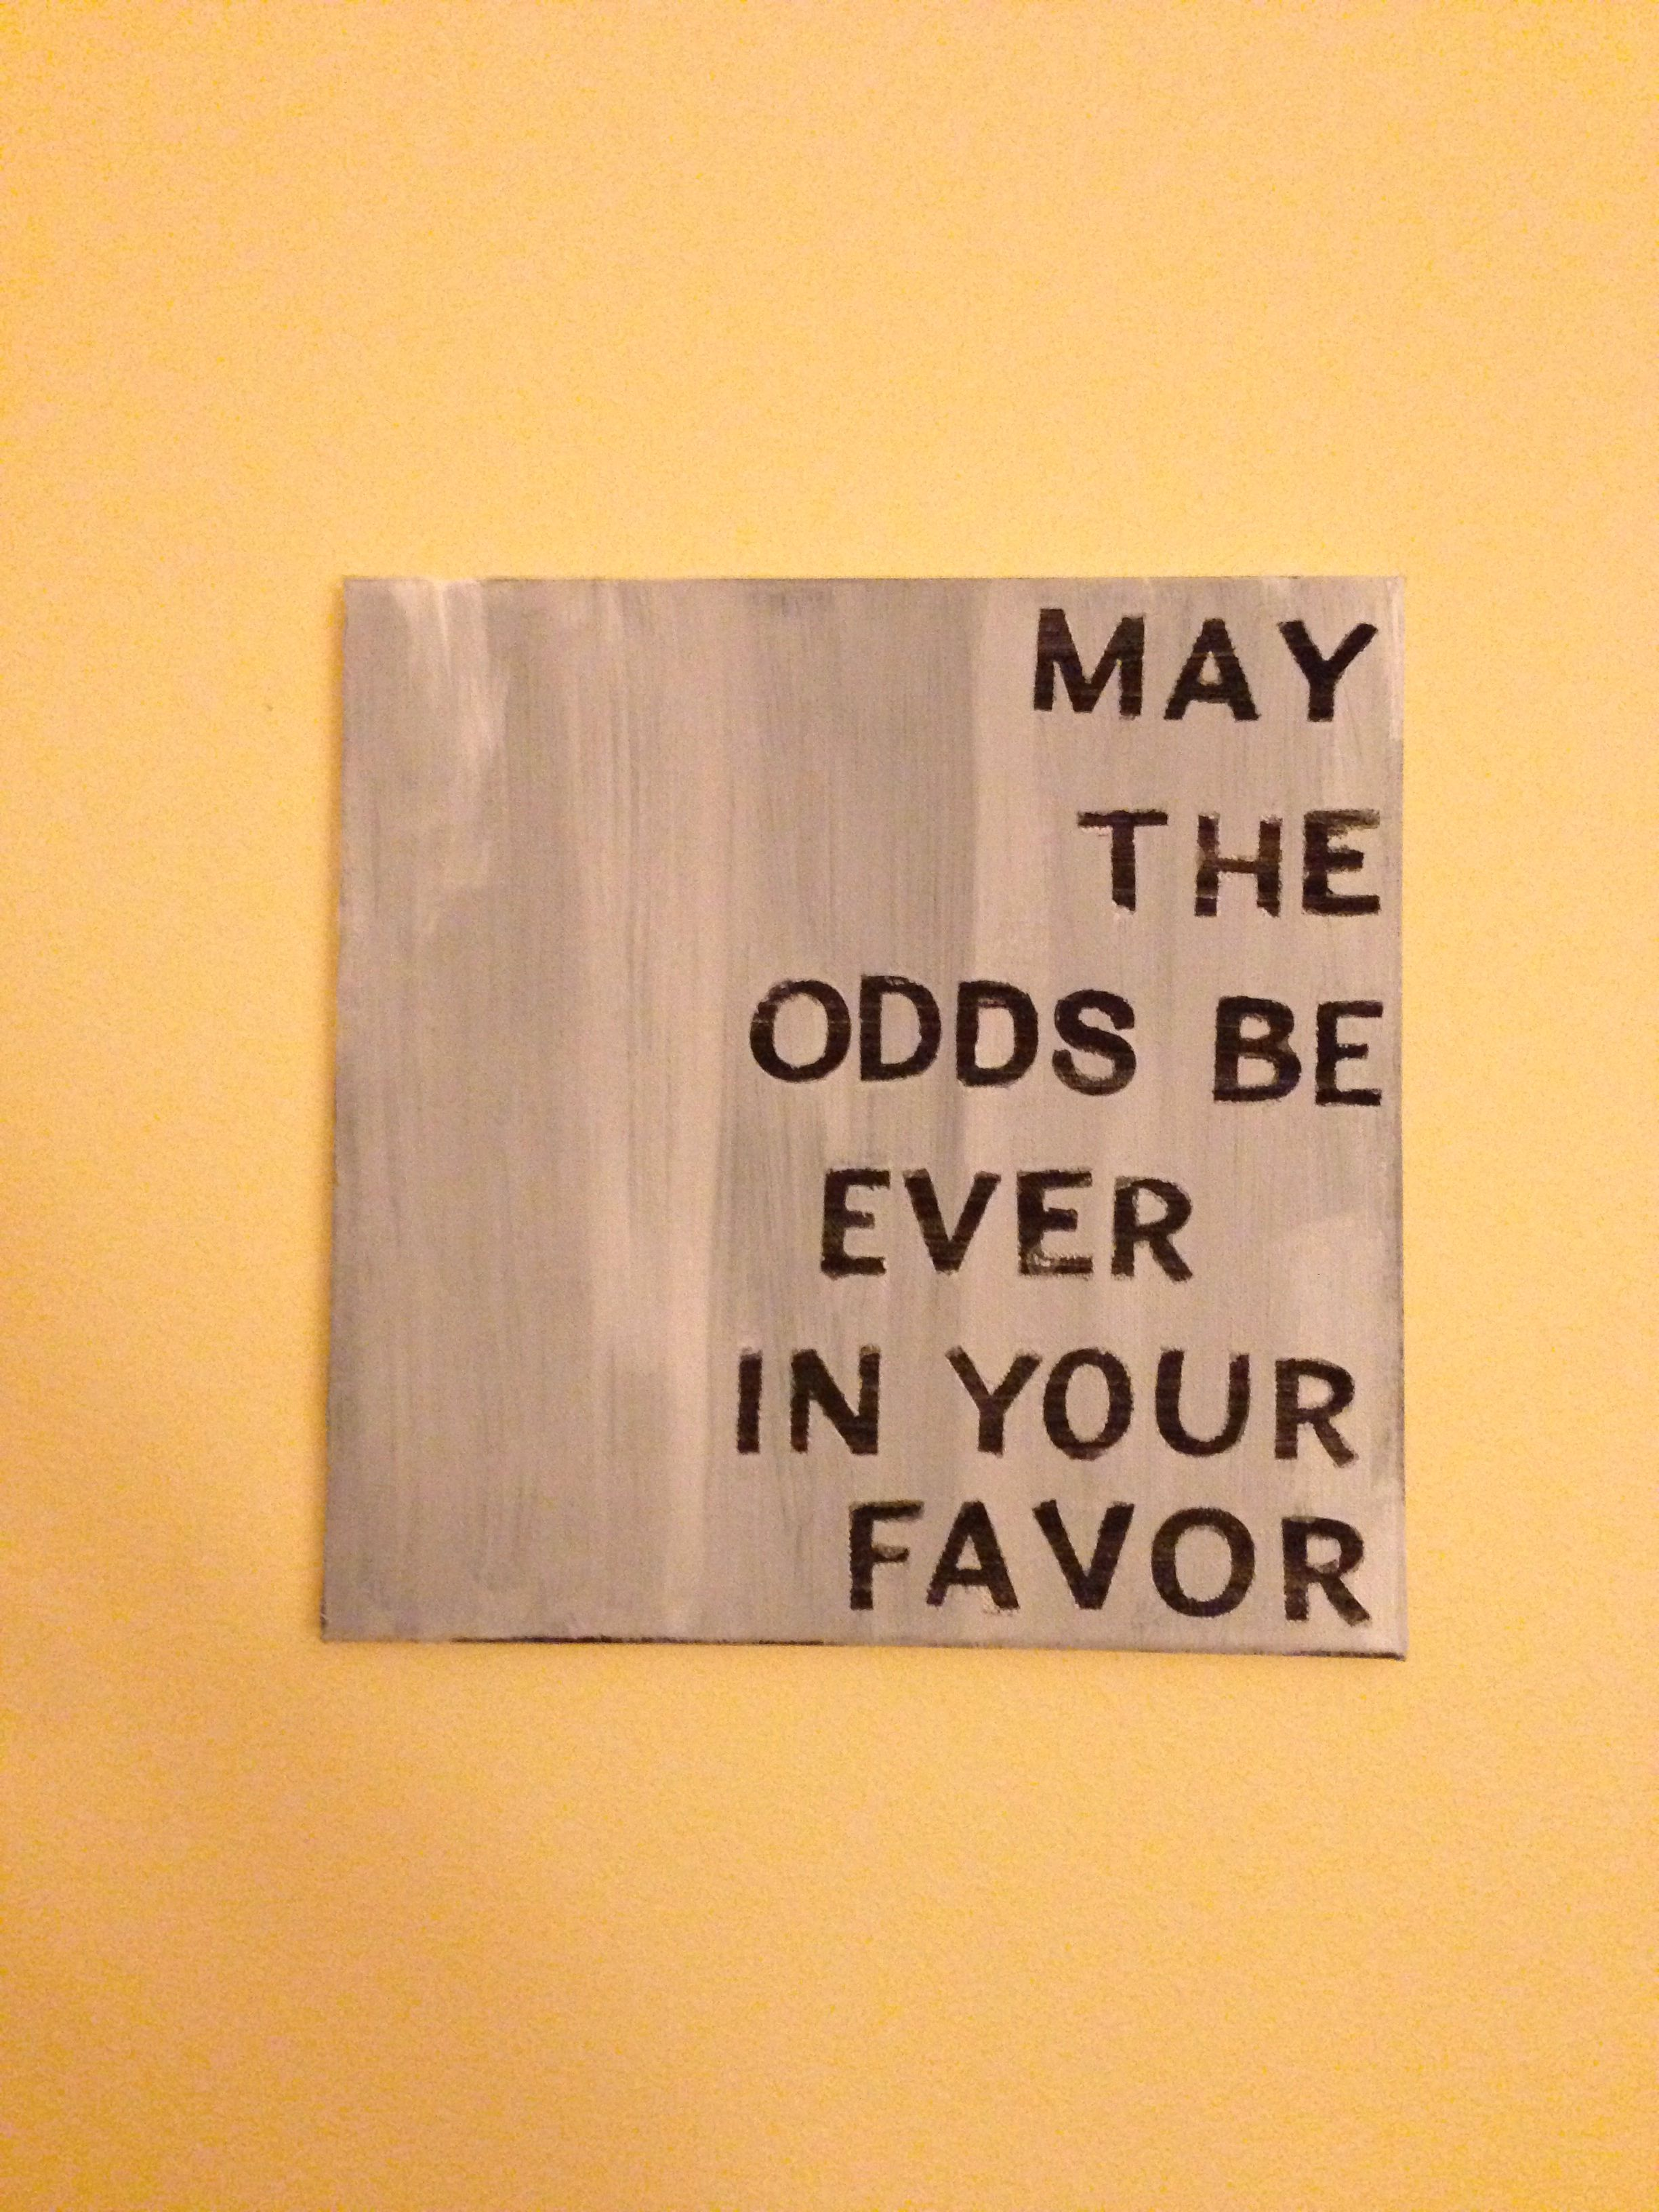 May the Odds Be Ever in Your Favor Poster - 13x19 $7.80 #